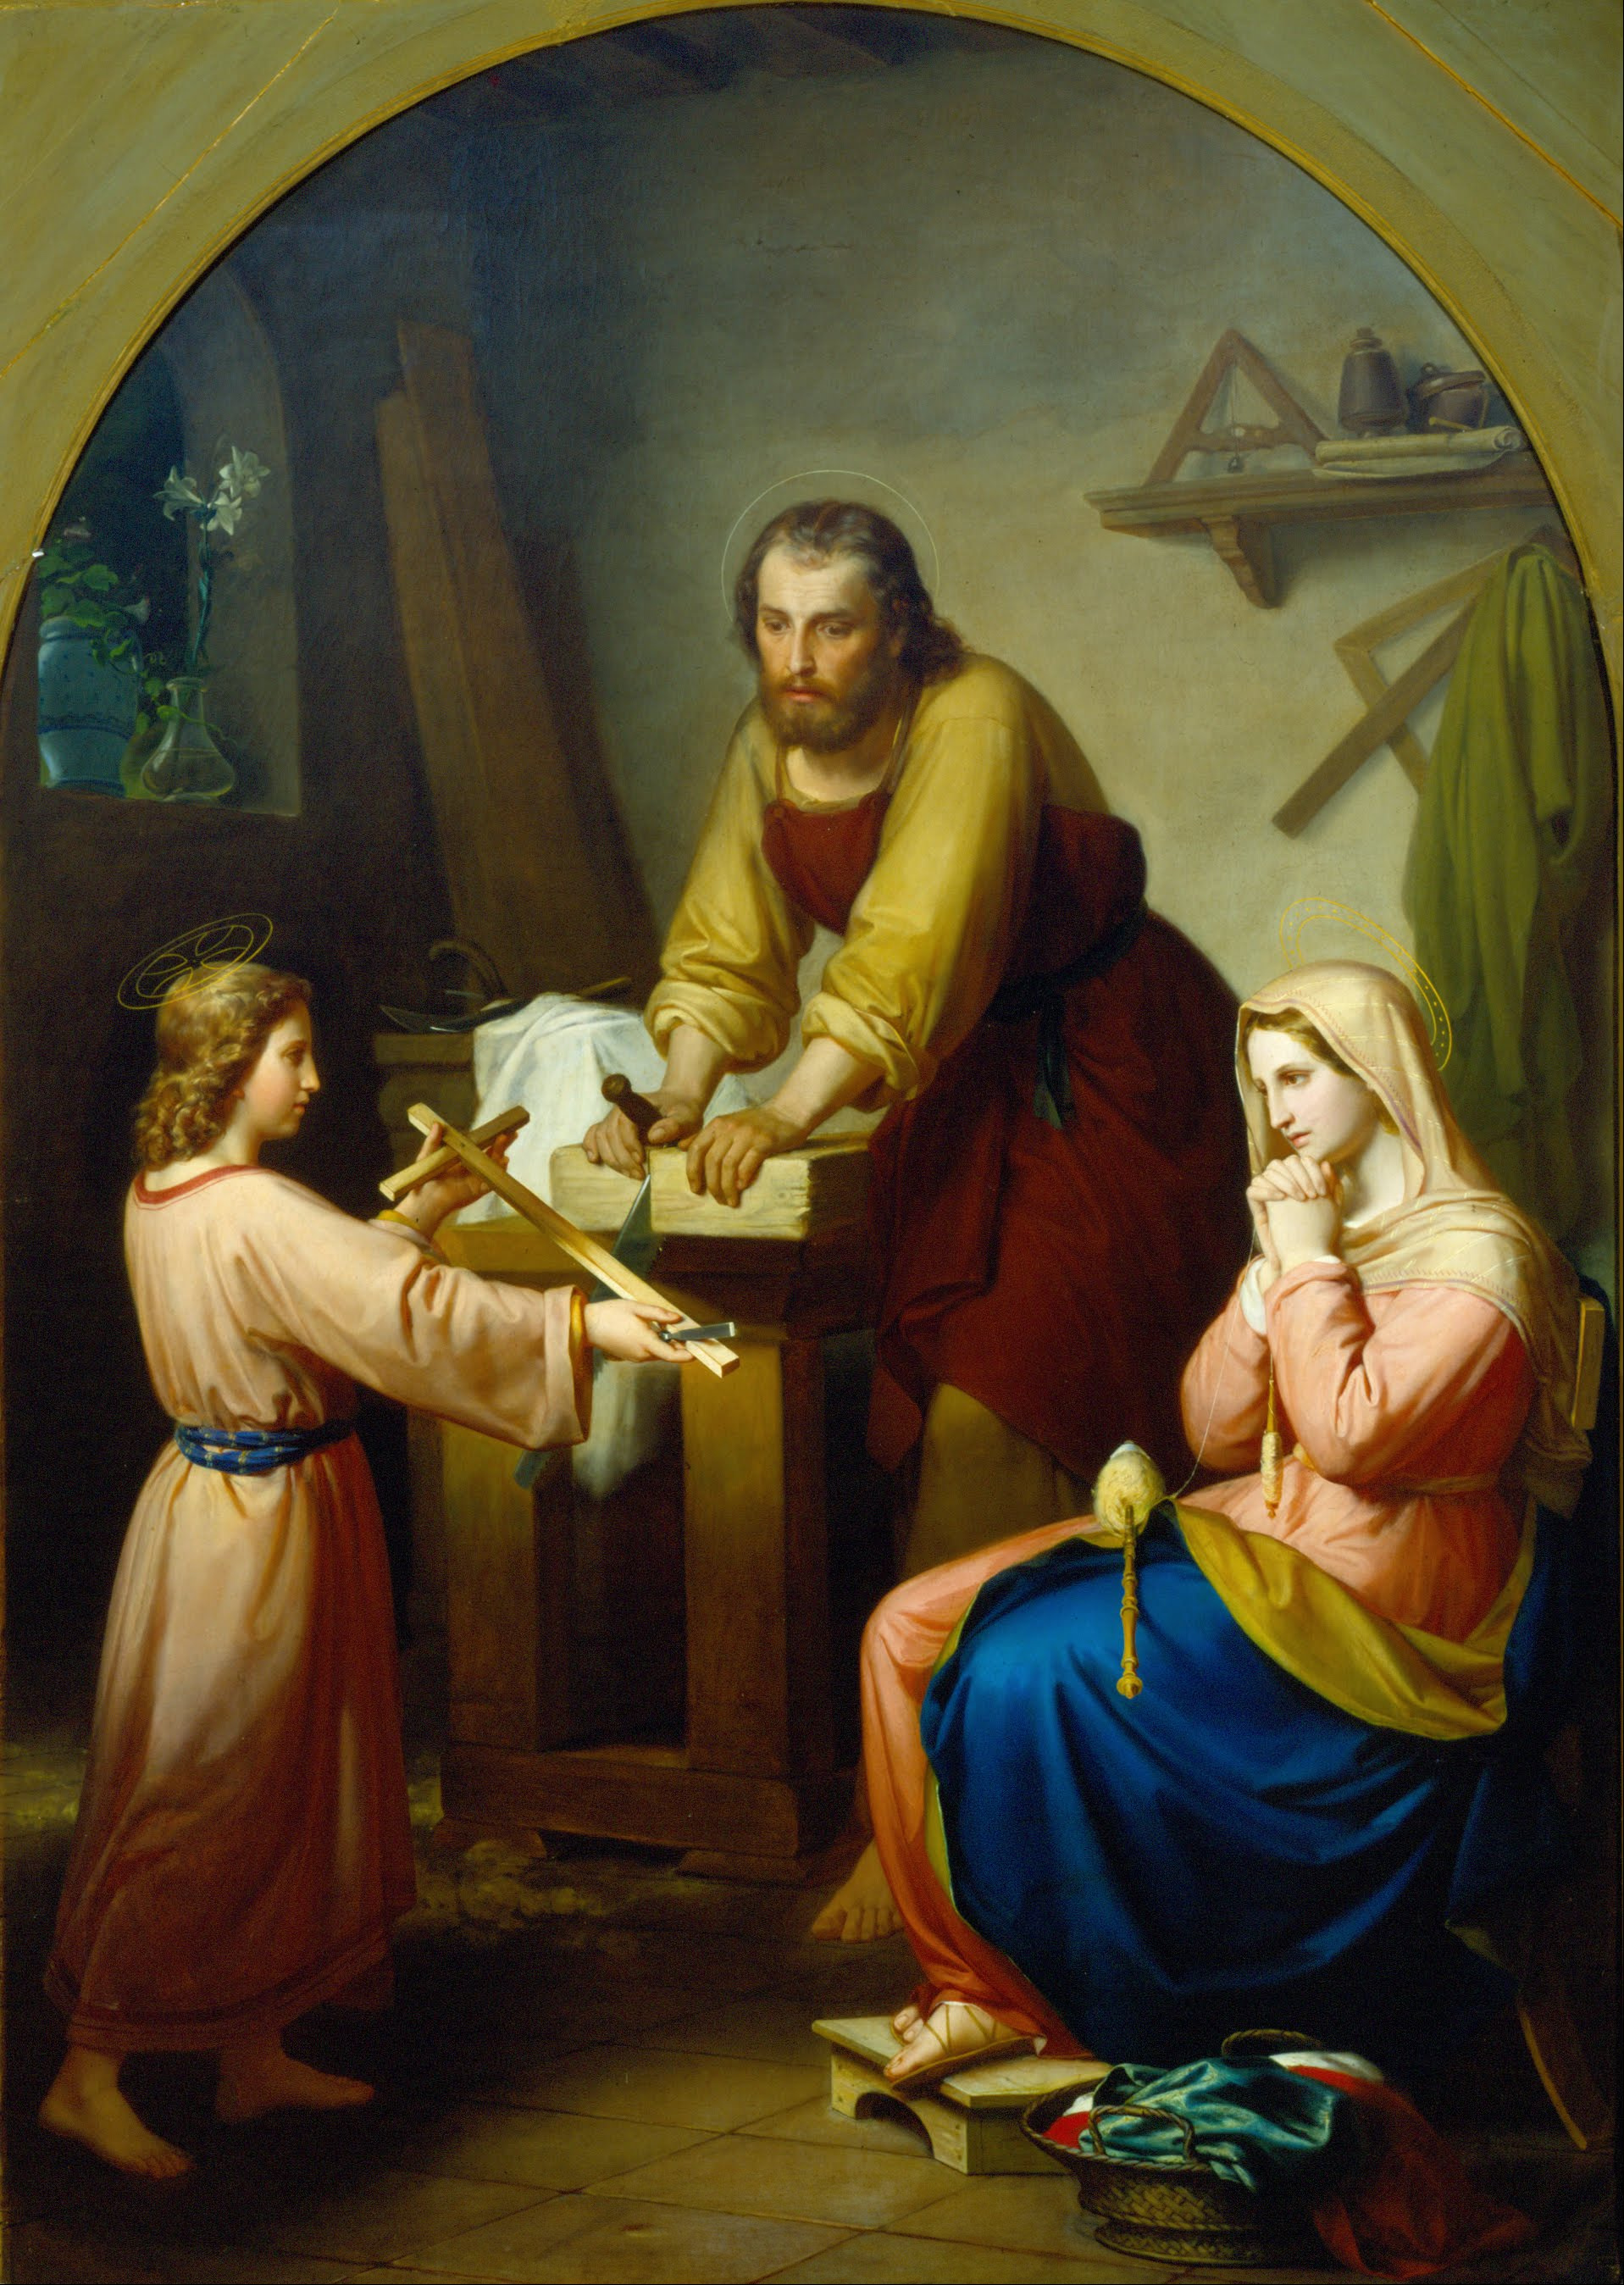 Rafael_Flores_-_The_Holy_Family_-_Google_Art_Project.jpg